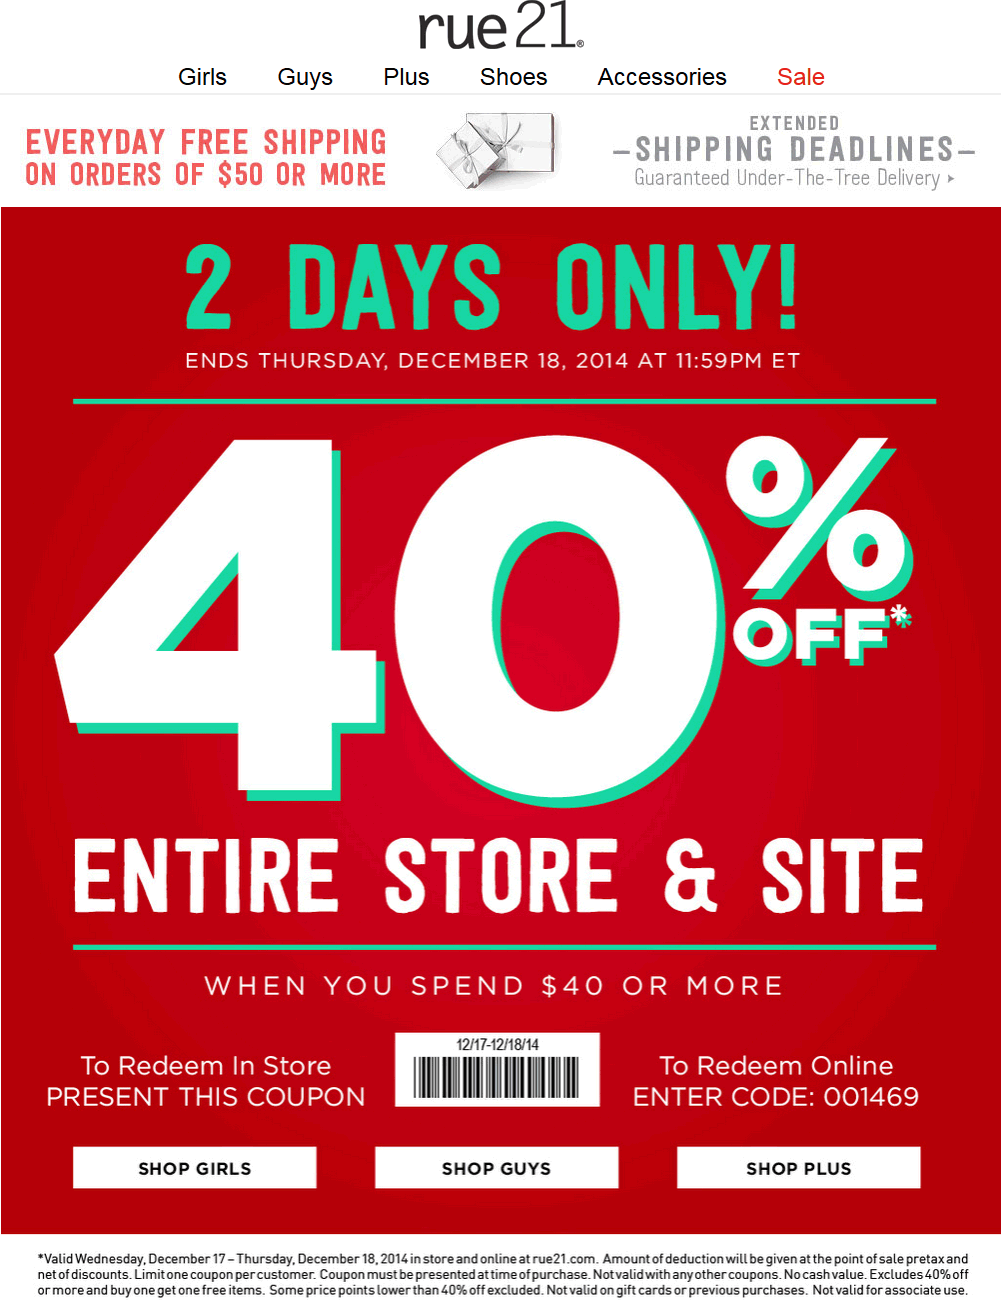 Save up to 10% off by using one of the 40+ Overstock coupons. mixedforms.ml sells a wide range of products including furniture, electronics, rugs and more for up to 70% off, with $ shipping. New customers usually get a bigger discount so use an Overstock coupon code .